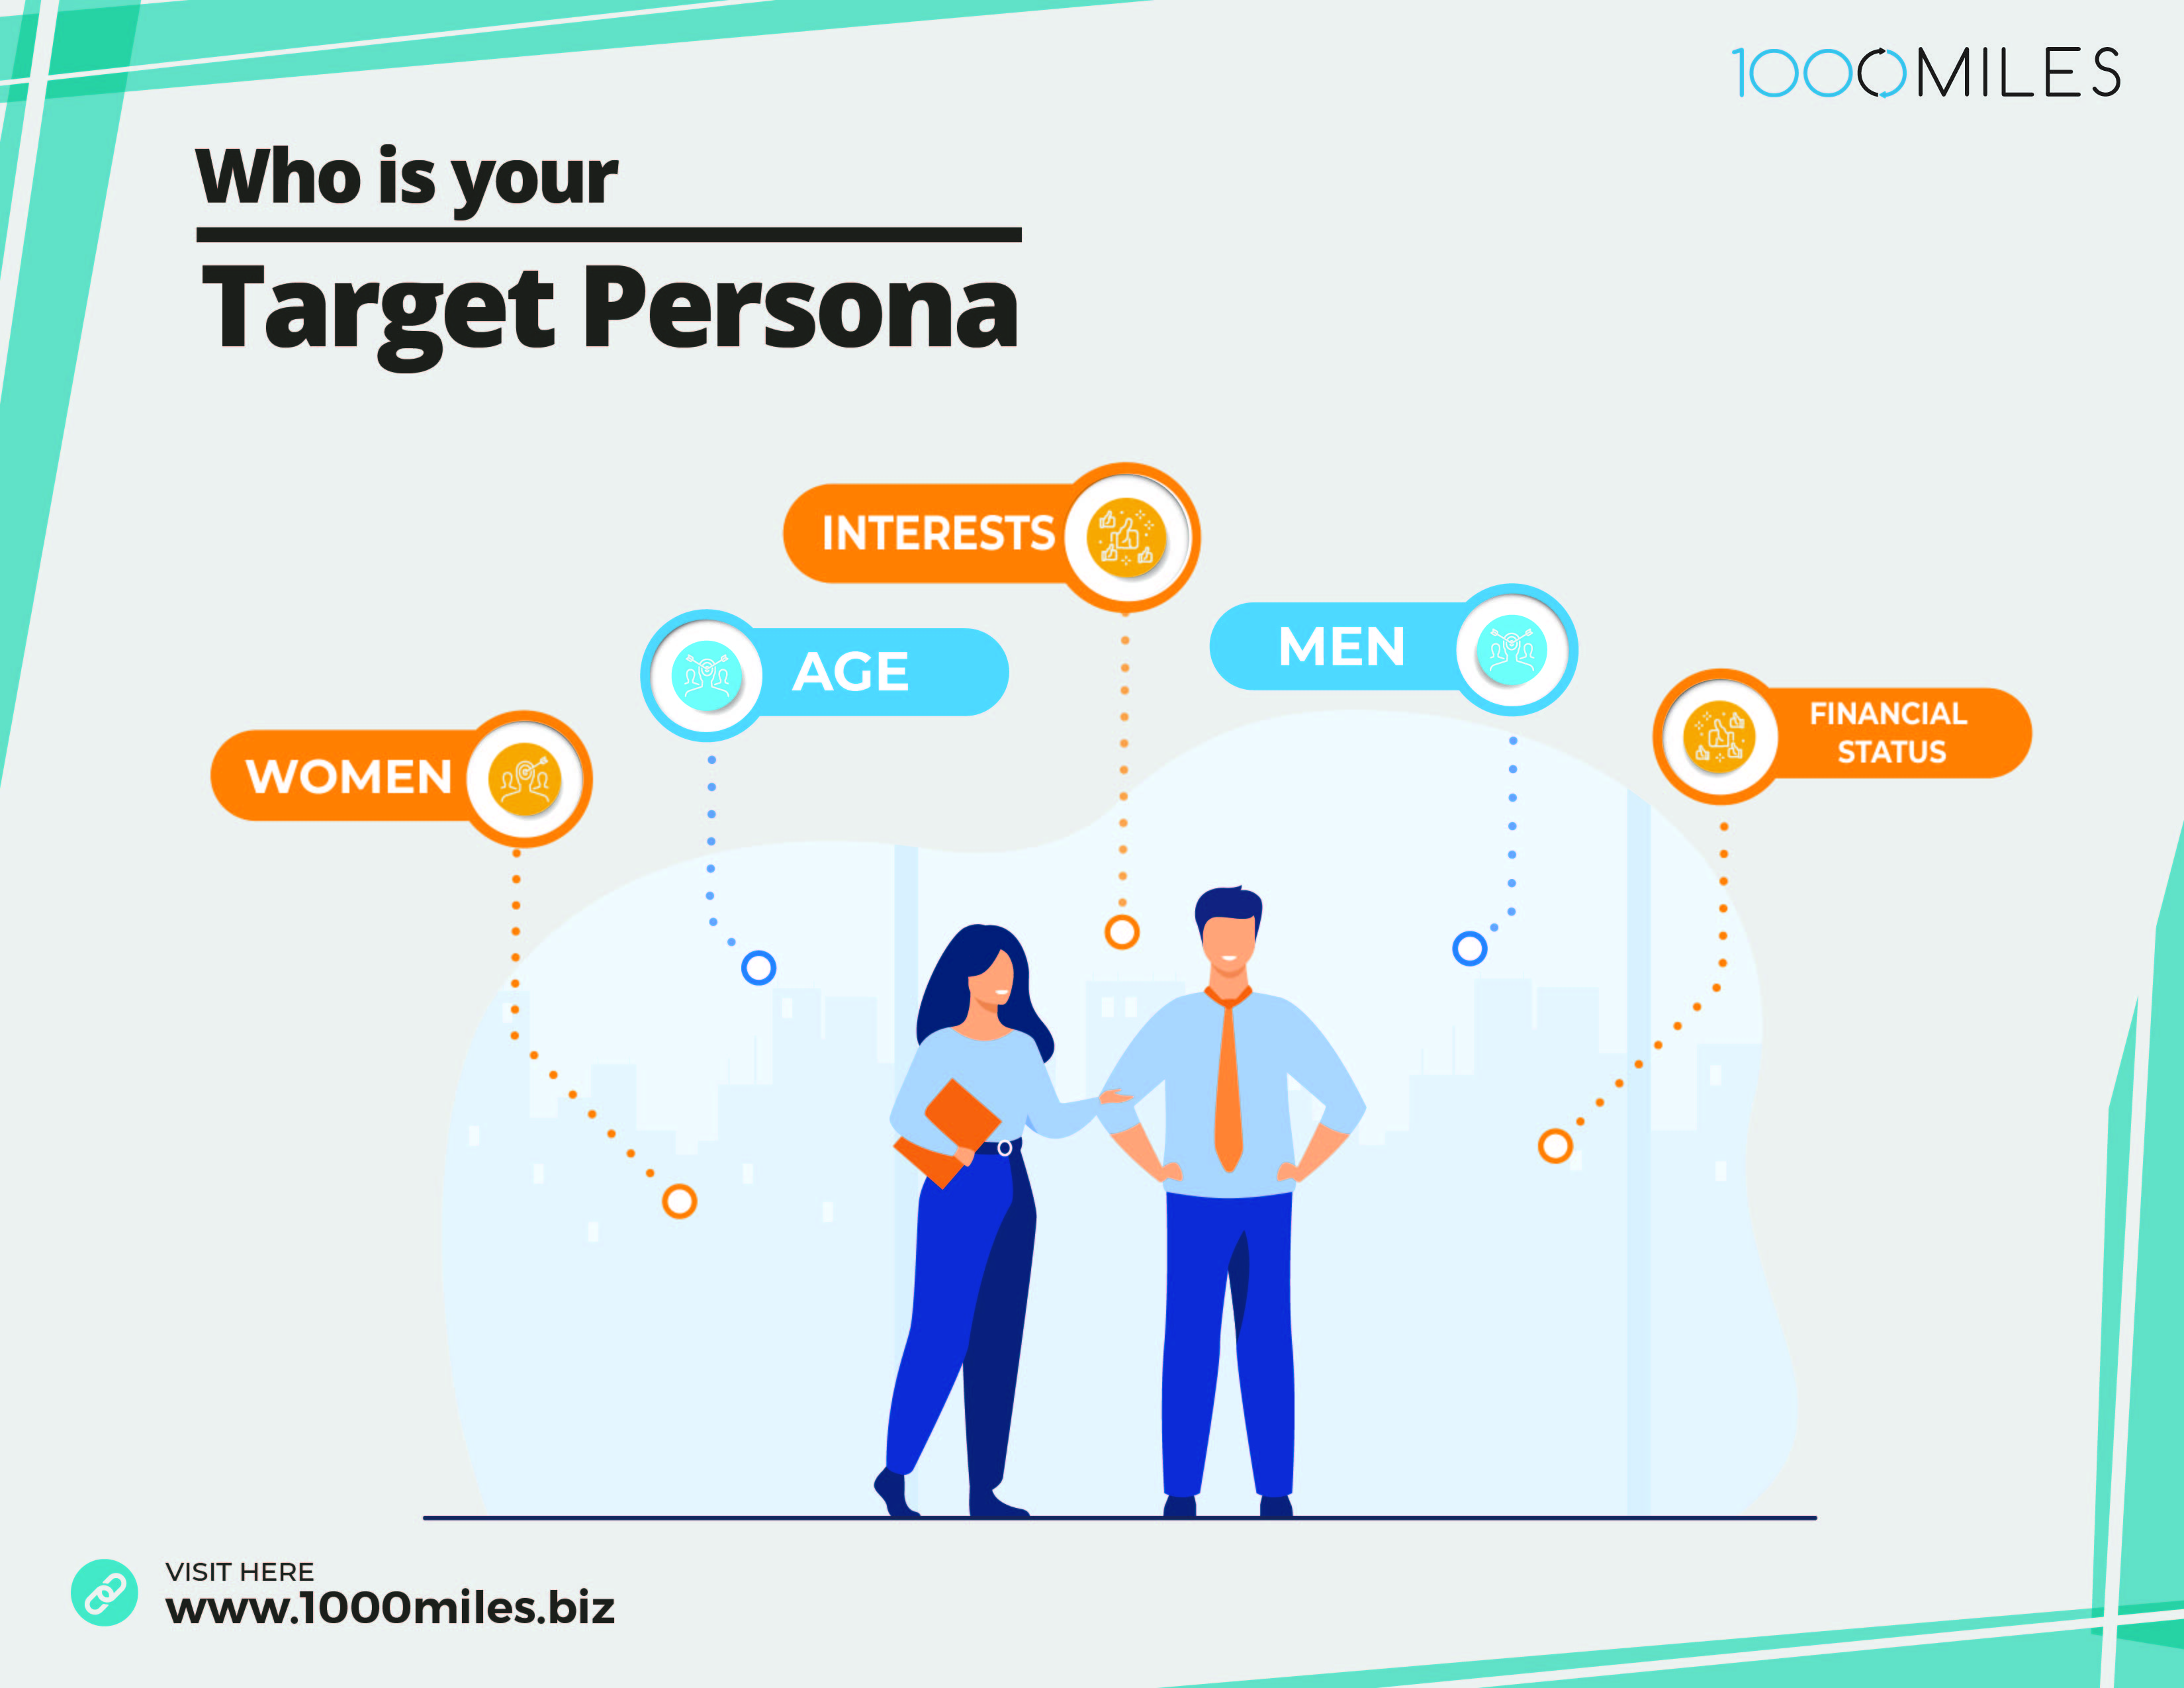 Who is your Target Persona